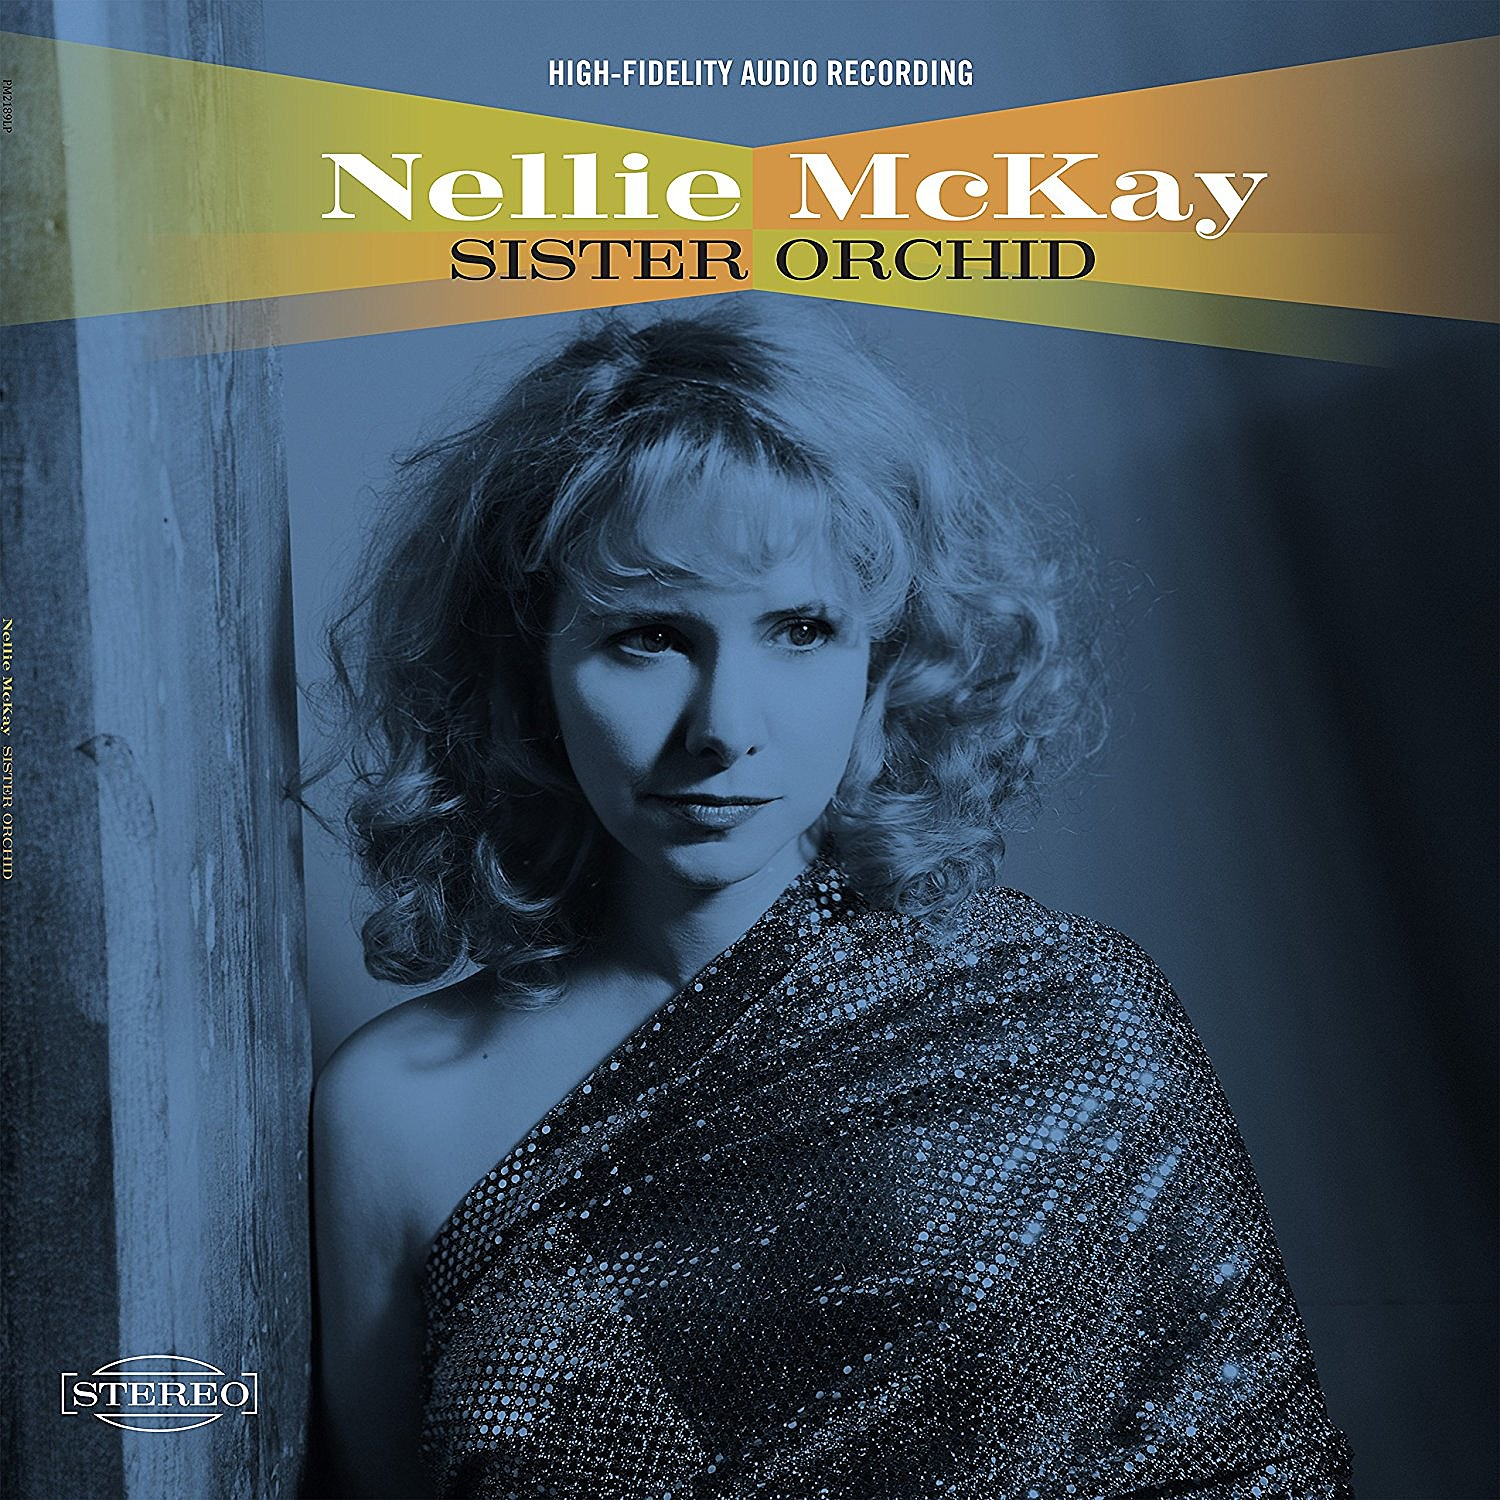 nellie-mckay-sister-orchid